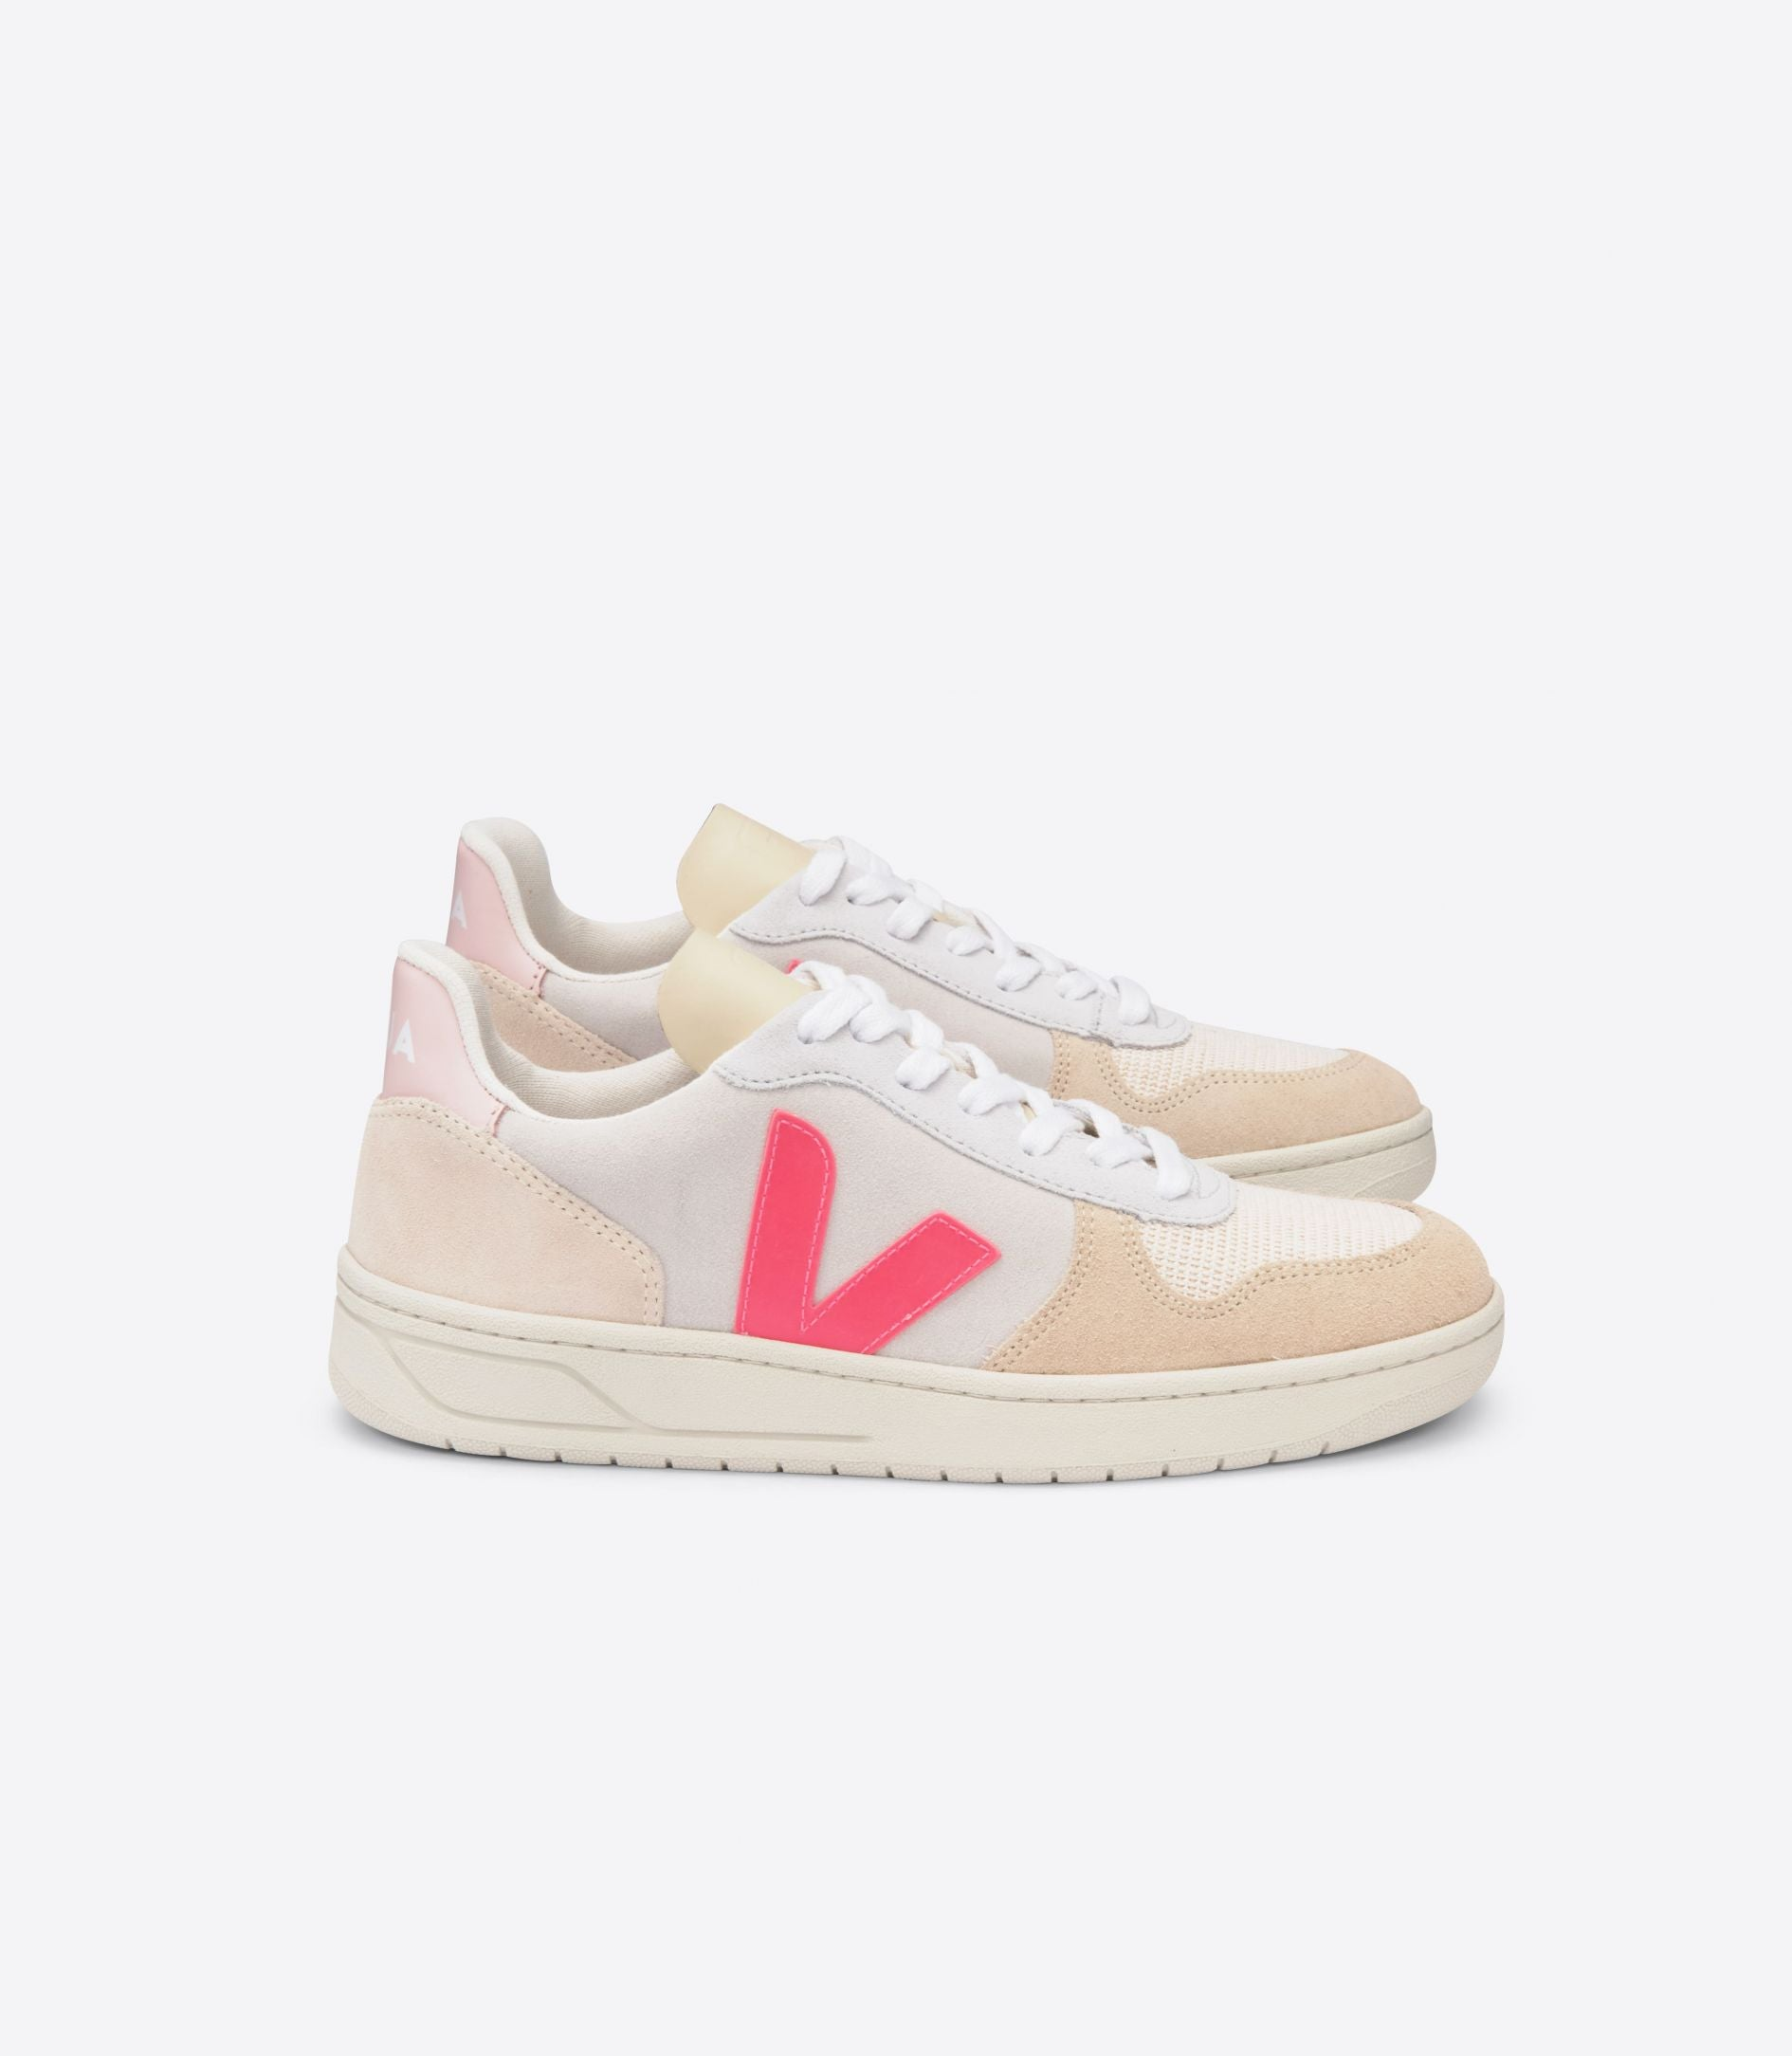 VEJA V-10 Suede in Multi, Natural, Rose